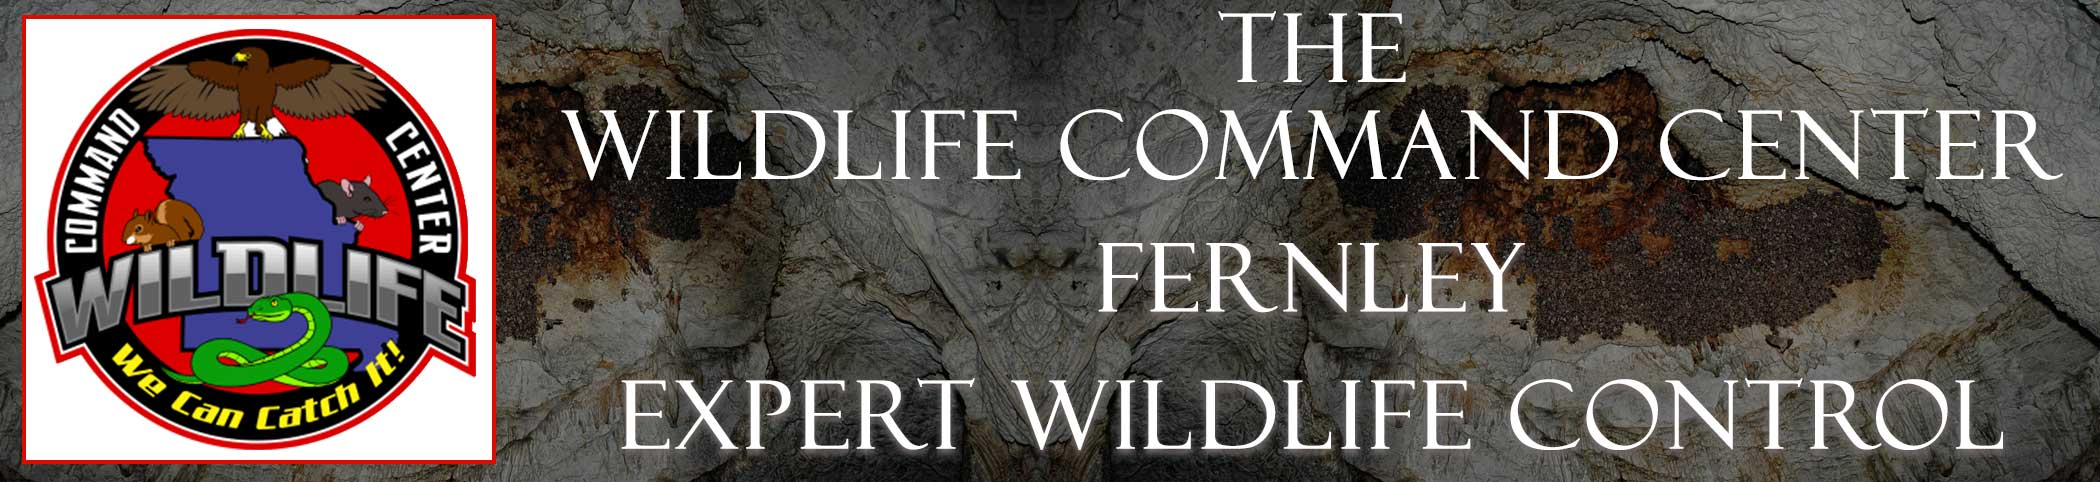 fernley-wildlife-command-center